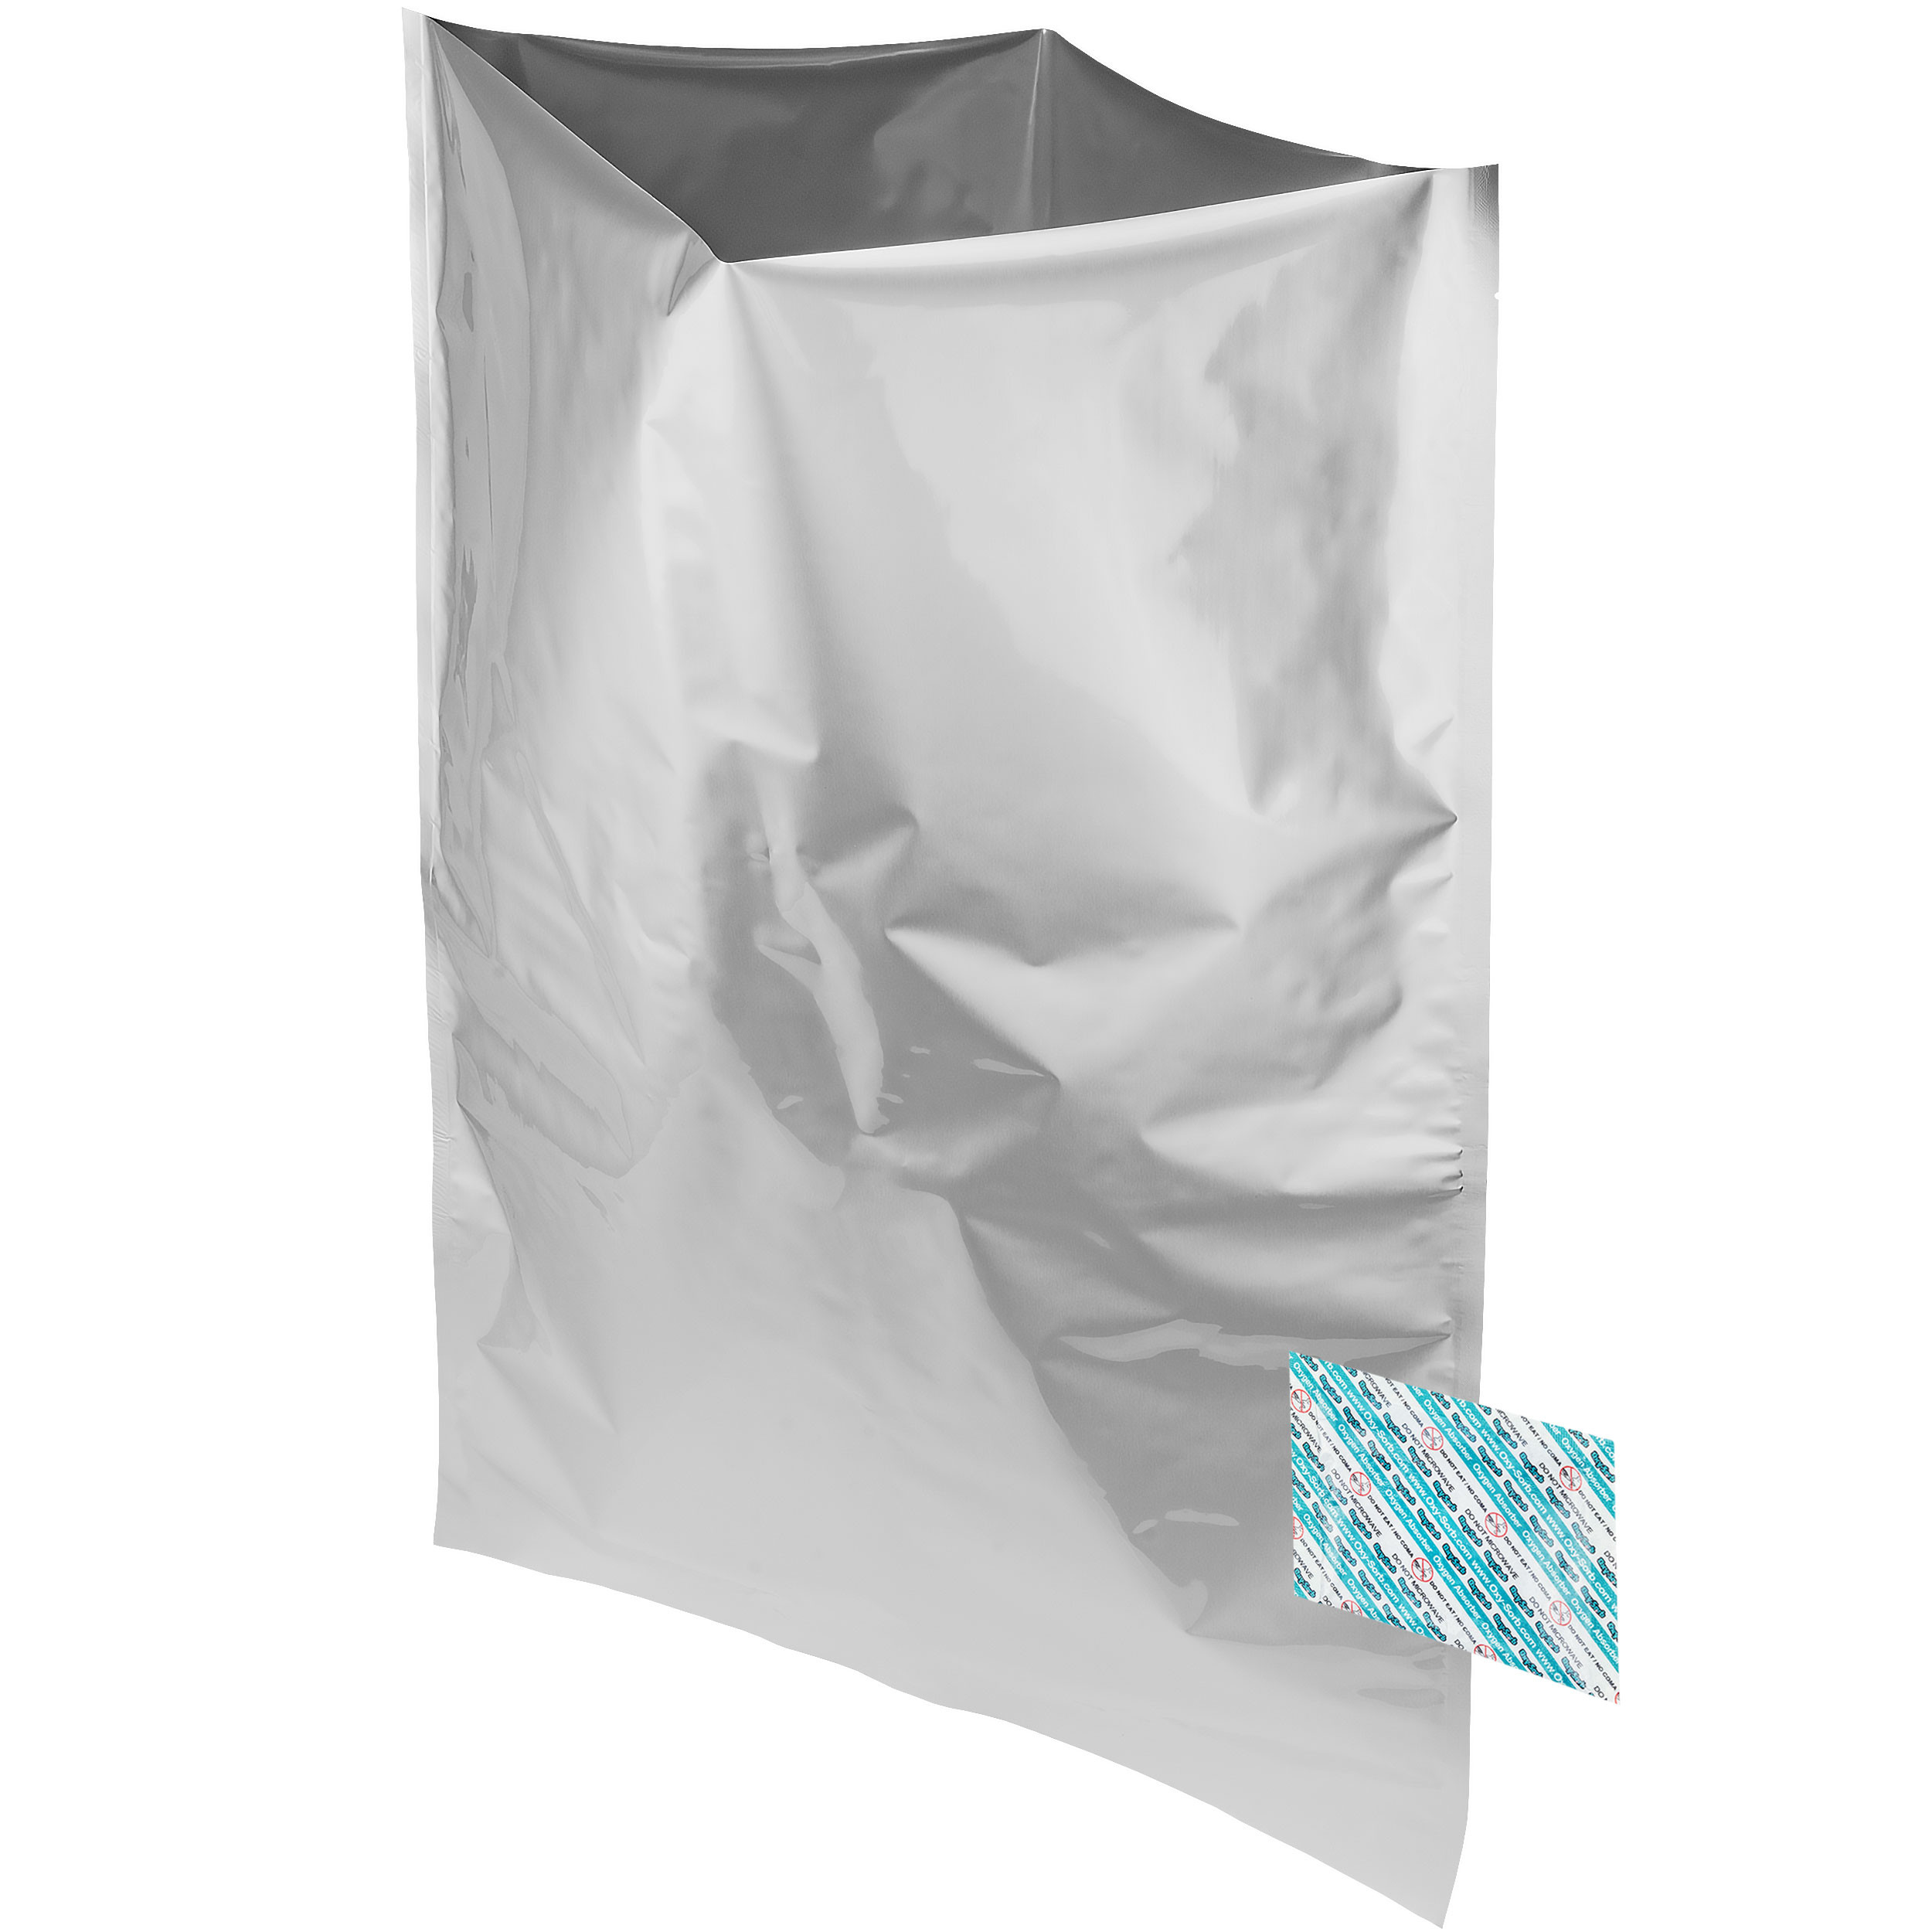 Mylar Bags & Oxygen Absorbers for Dried Food & Long Term Storage by Dry-Packs, 5-Gallon, Pack of 20